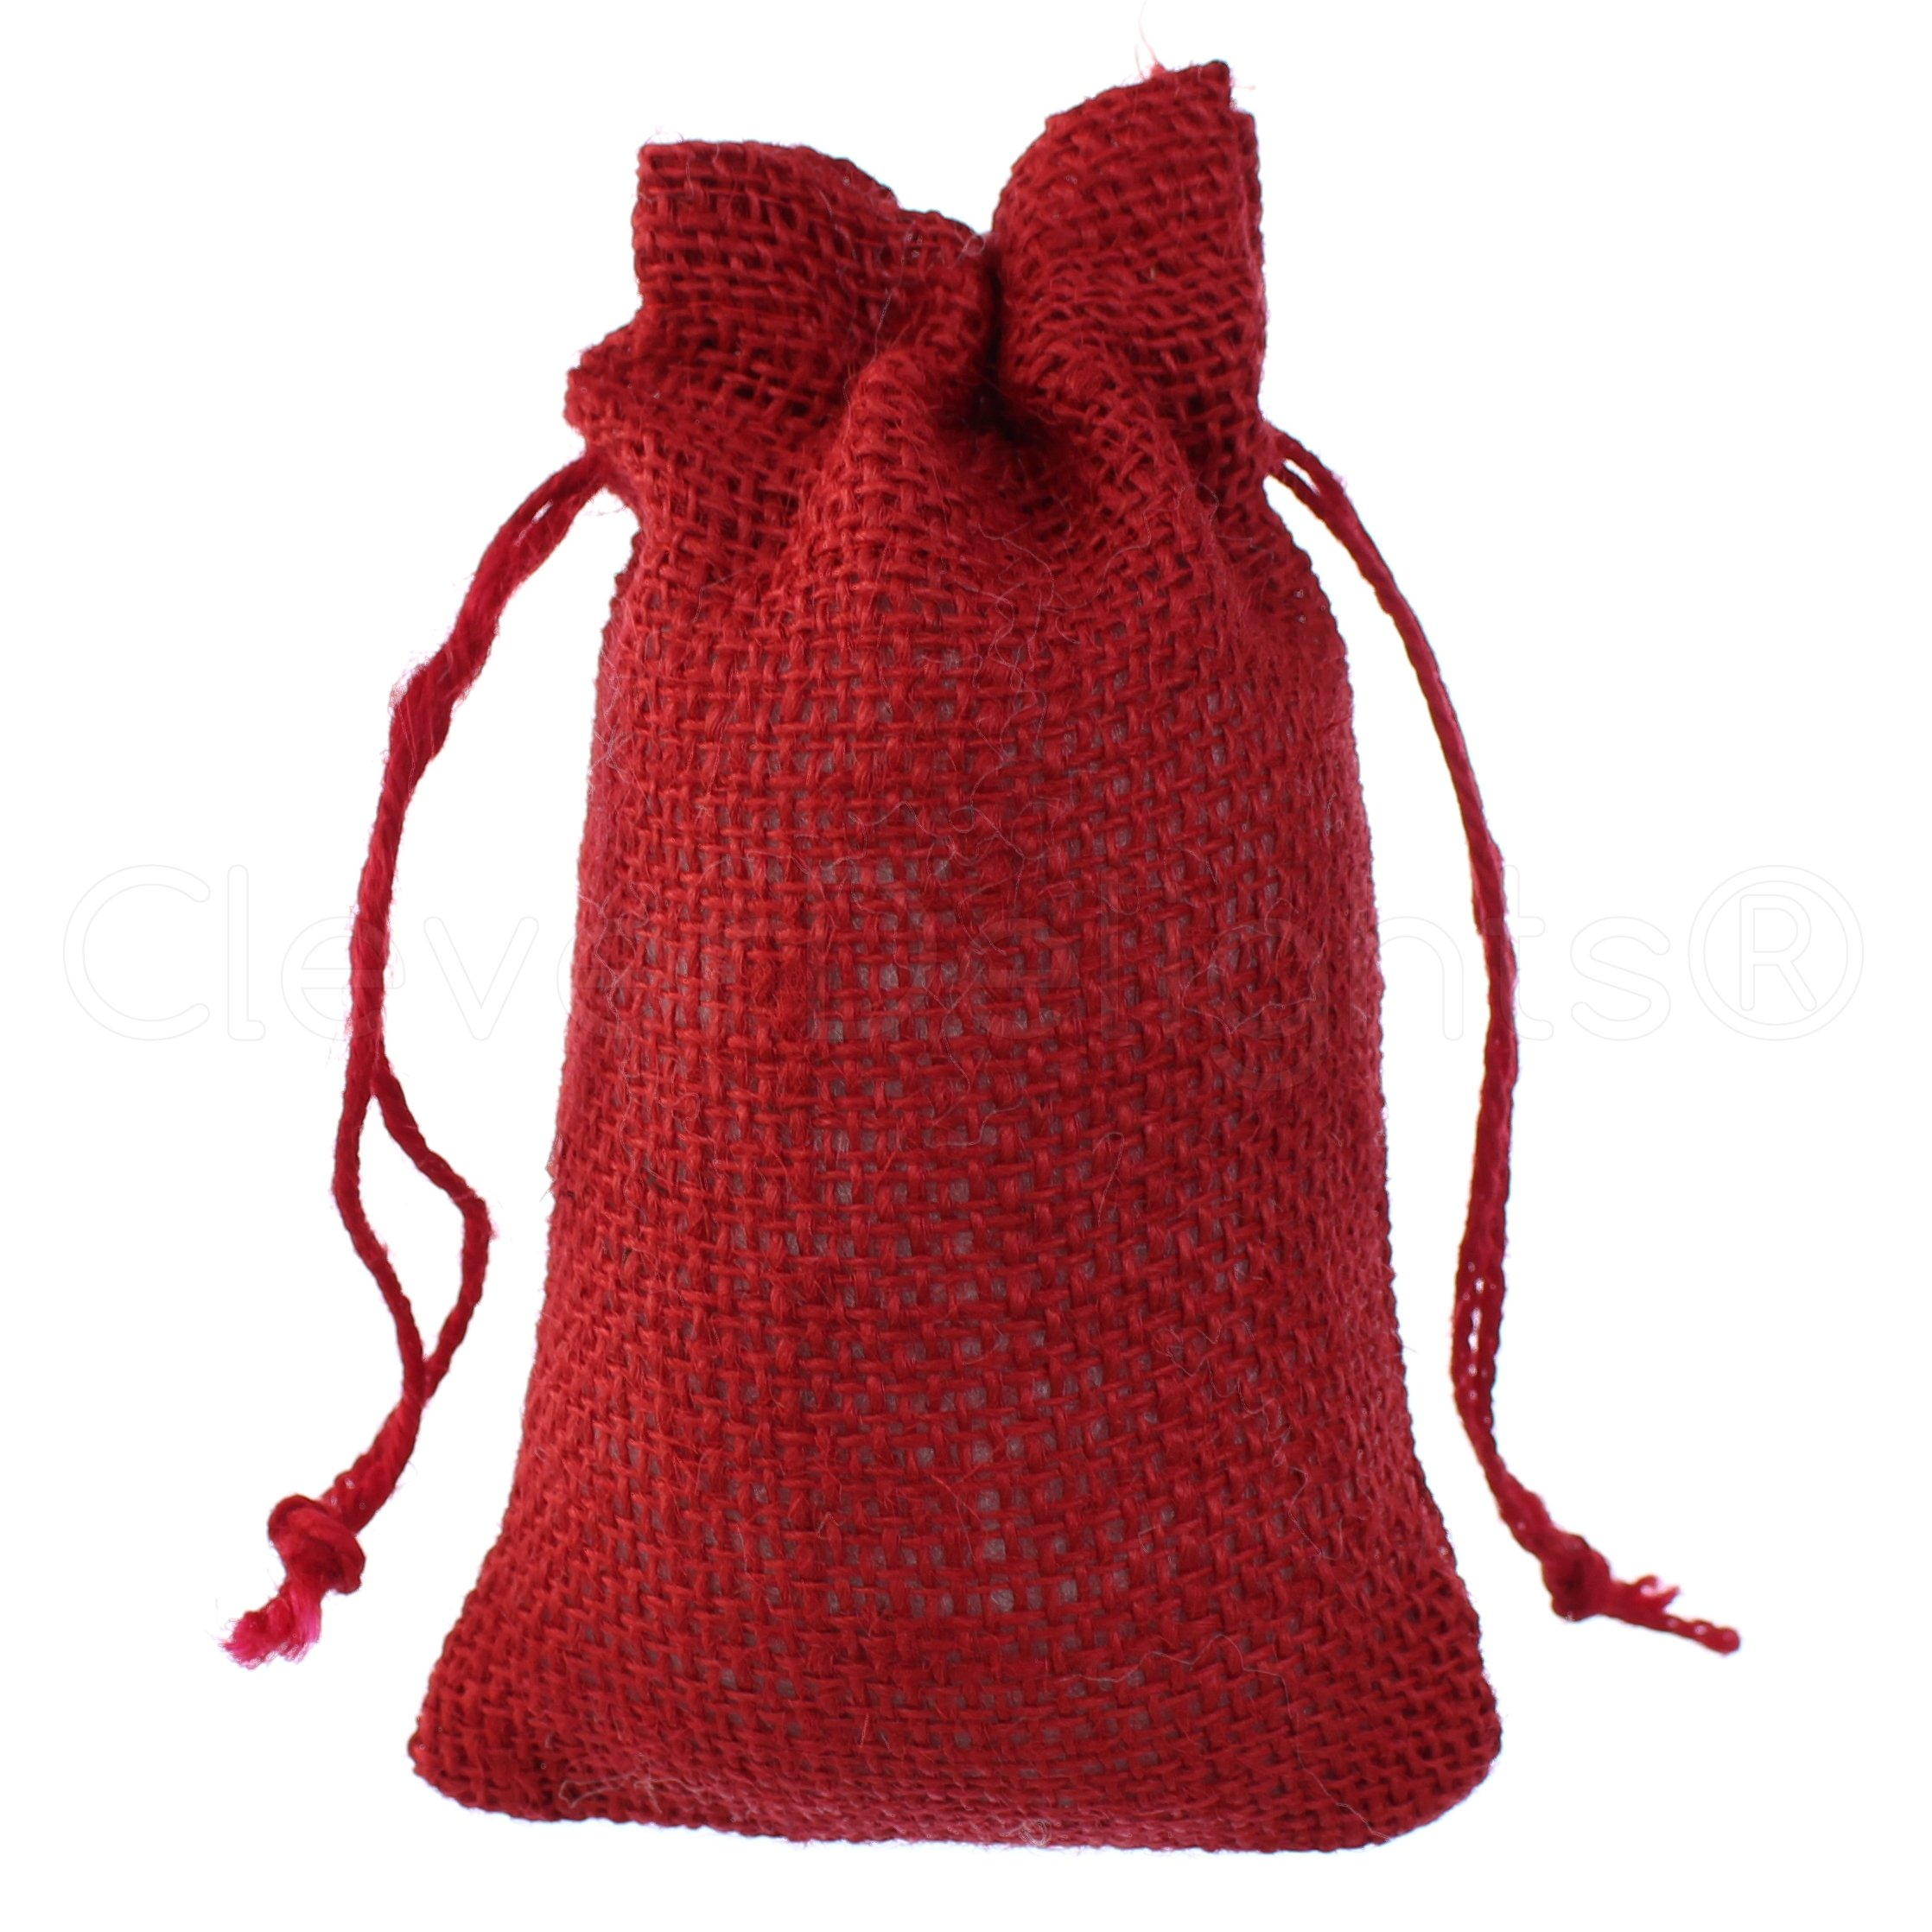 25 Pack - CleverDelights 4'' x 6'' Red Burlap Bags with Natural Jute Drawstring - Small Burlap Pouch - Christmas Present Holiday Décor Rustic Party Favor Bags